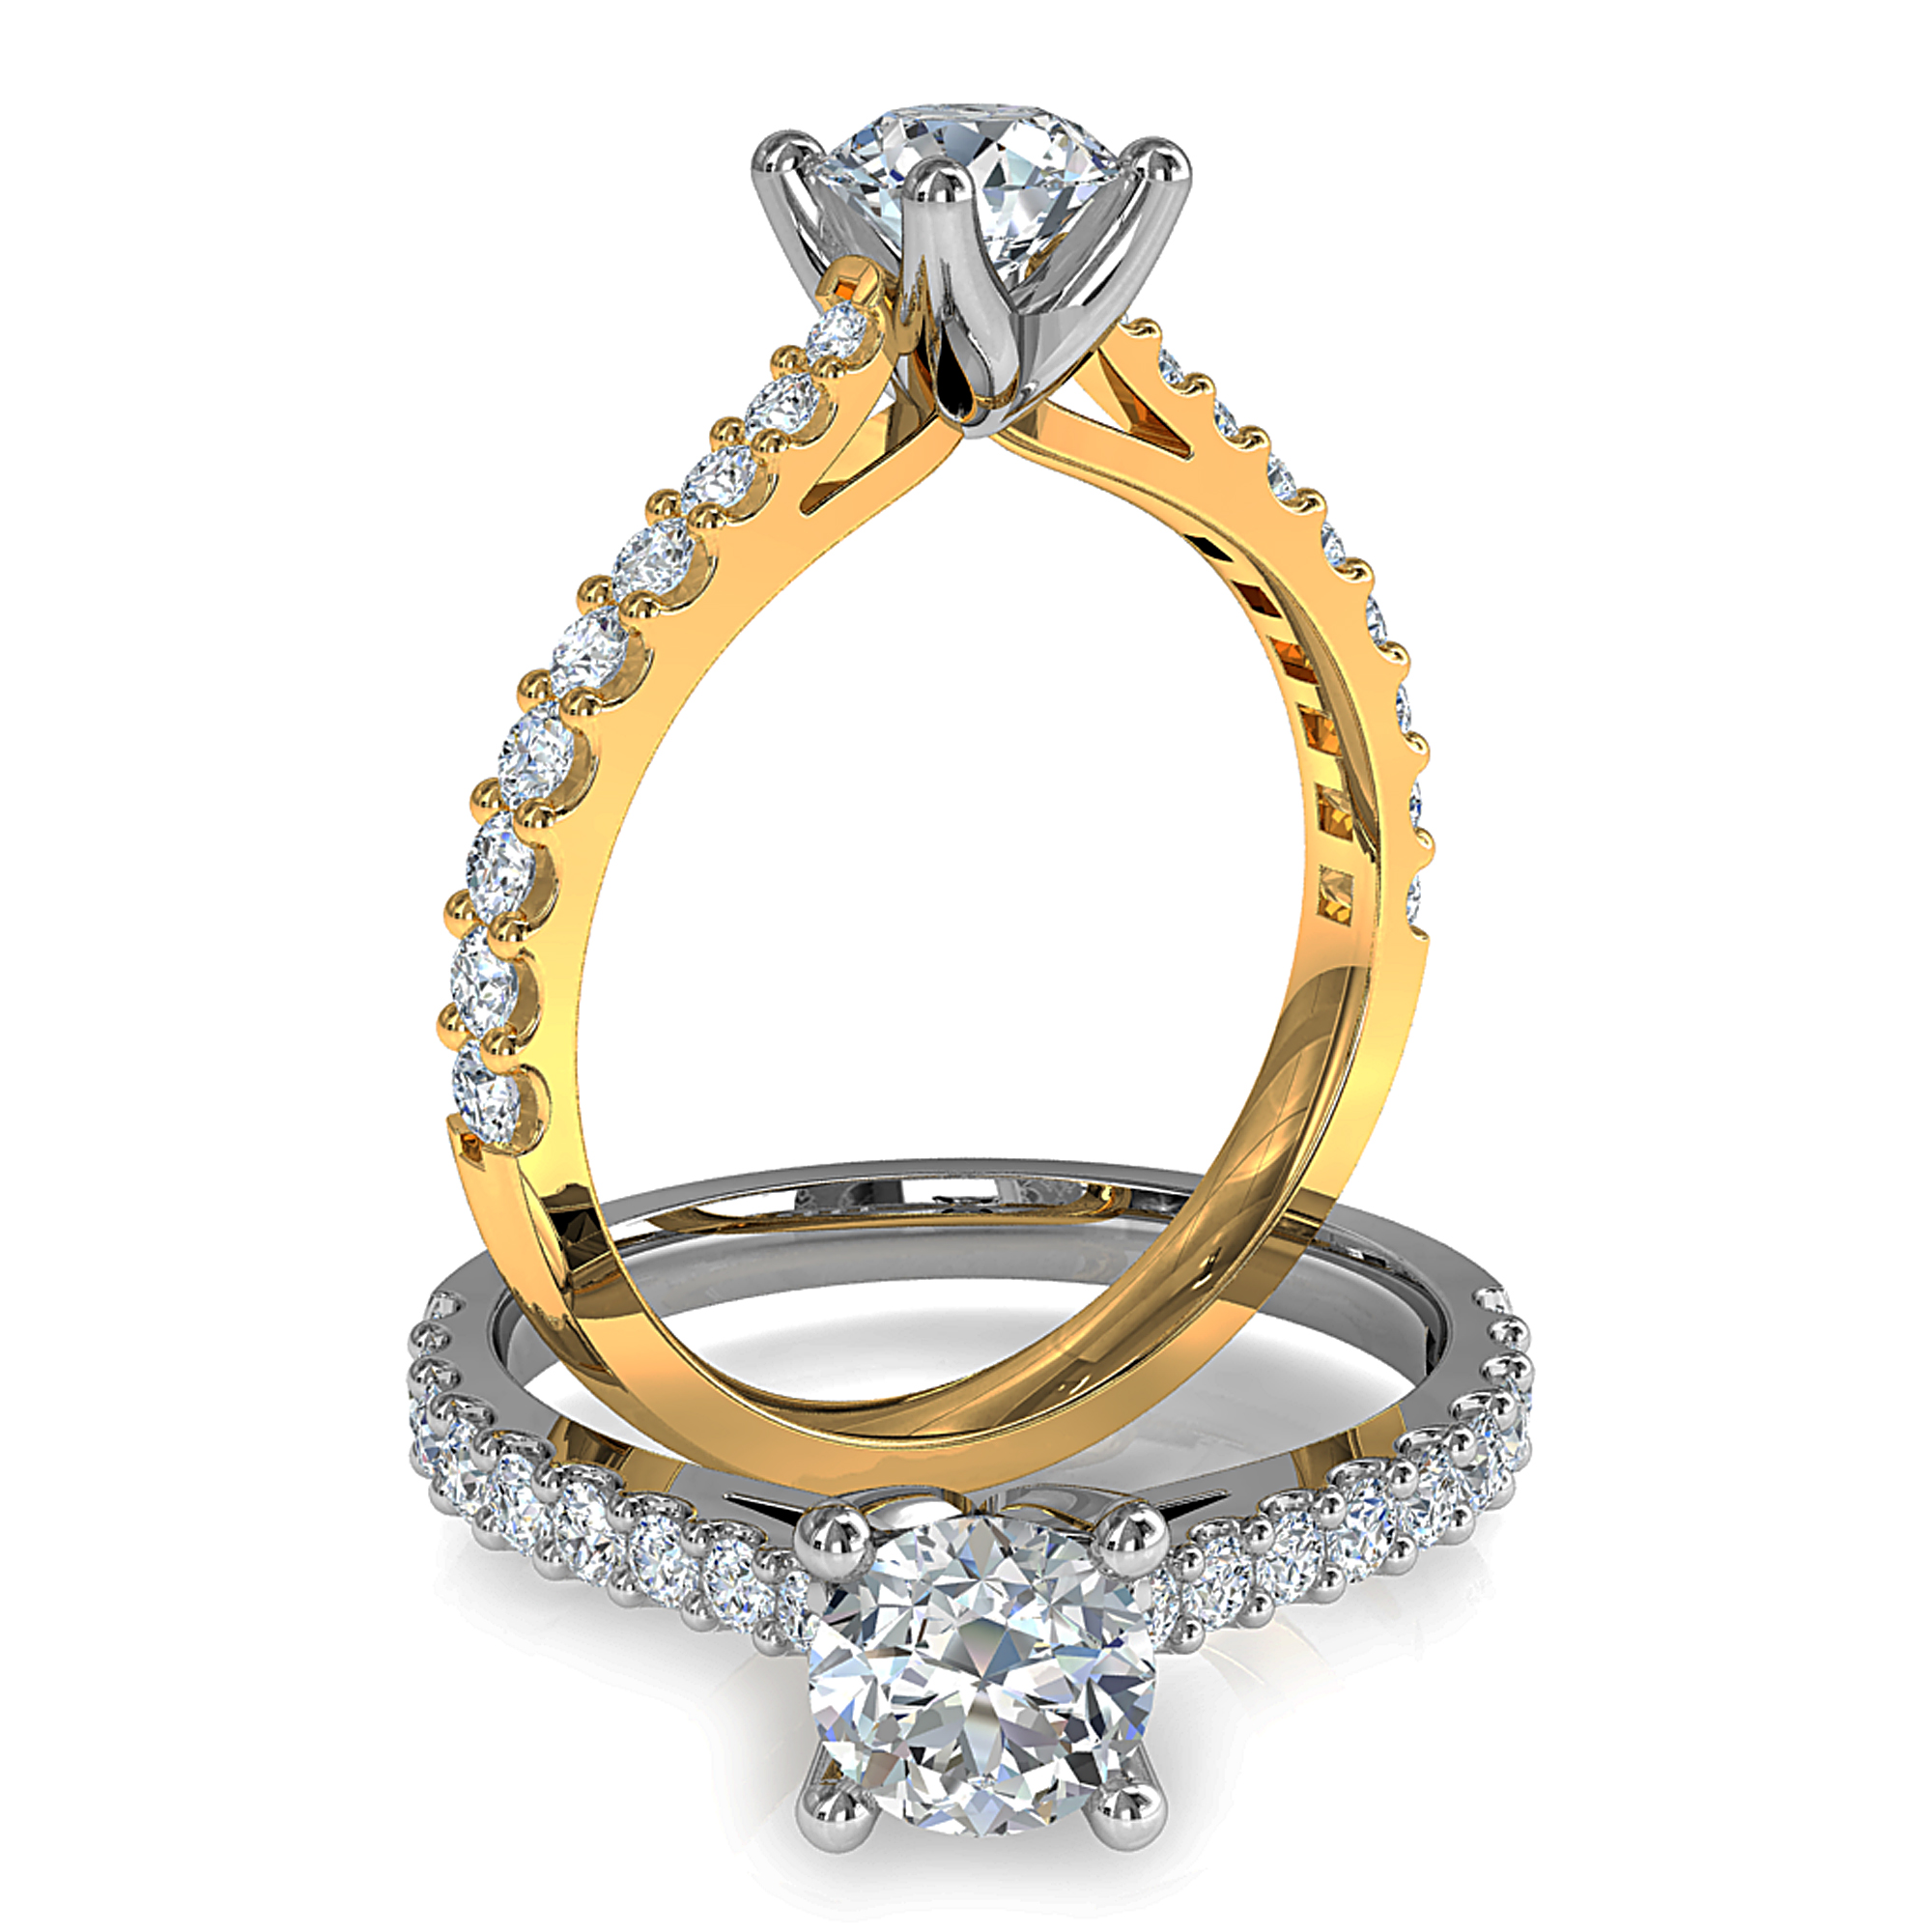 Round Brilliant Cut Solitaire Diamond Engagement Ring, 4 Button Claws Set on a Tapered Cut Claw Band with Fluted Undersetting.